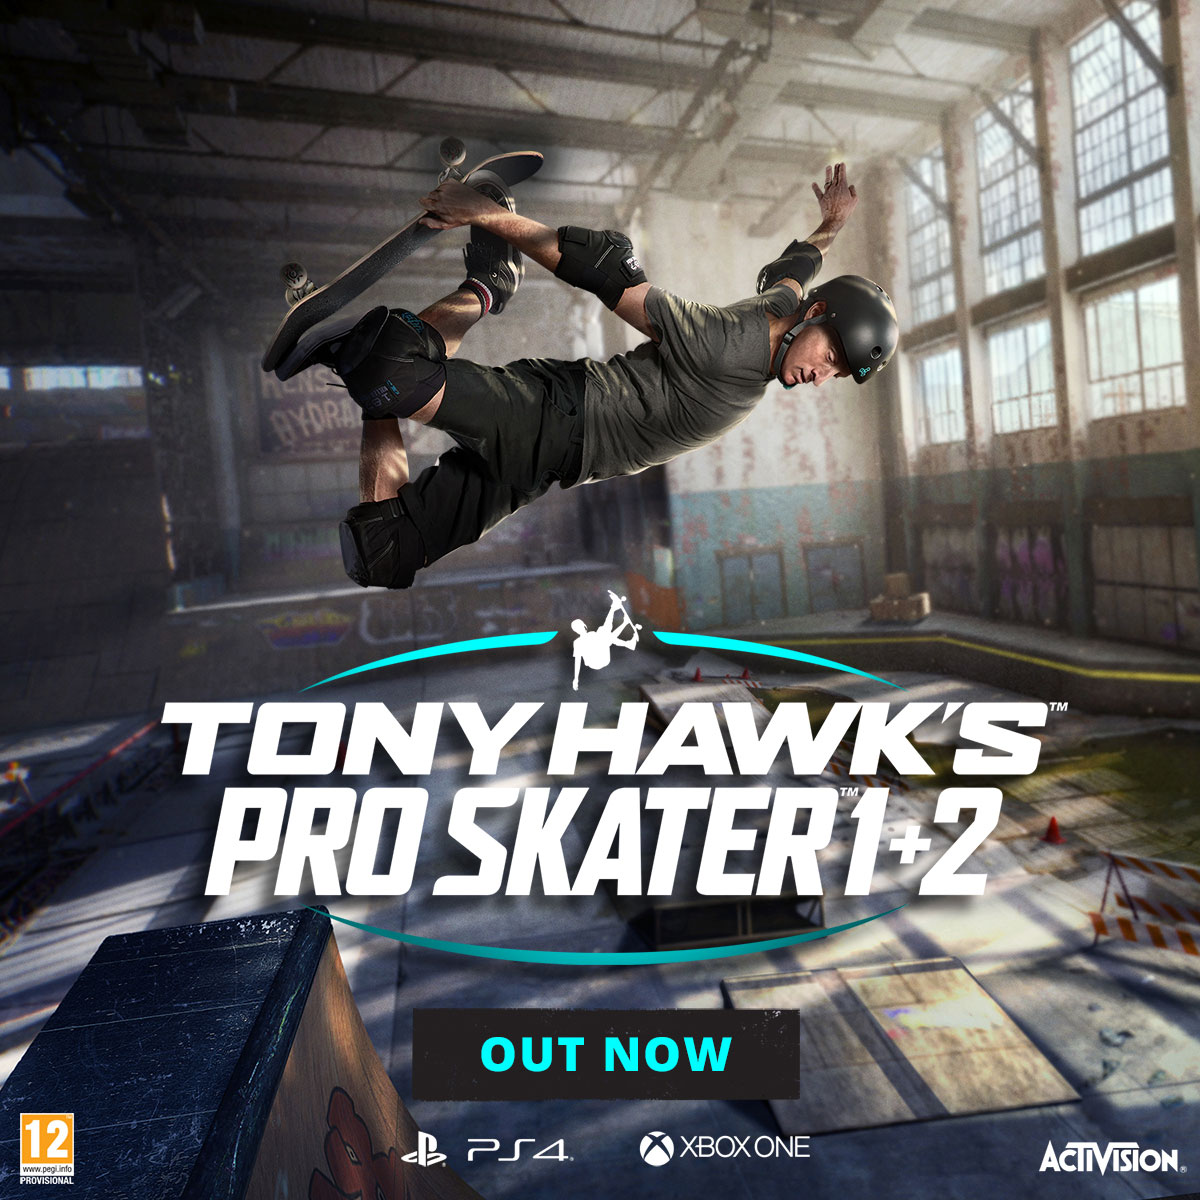 Tony Hawk Pro Skater Pre-order Now